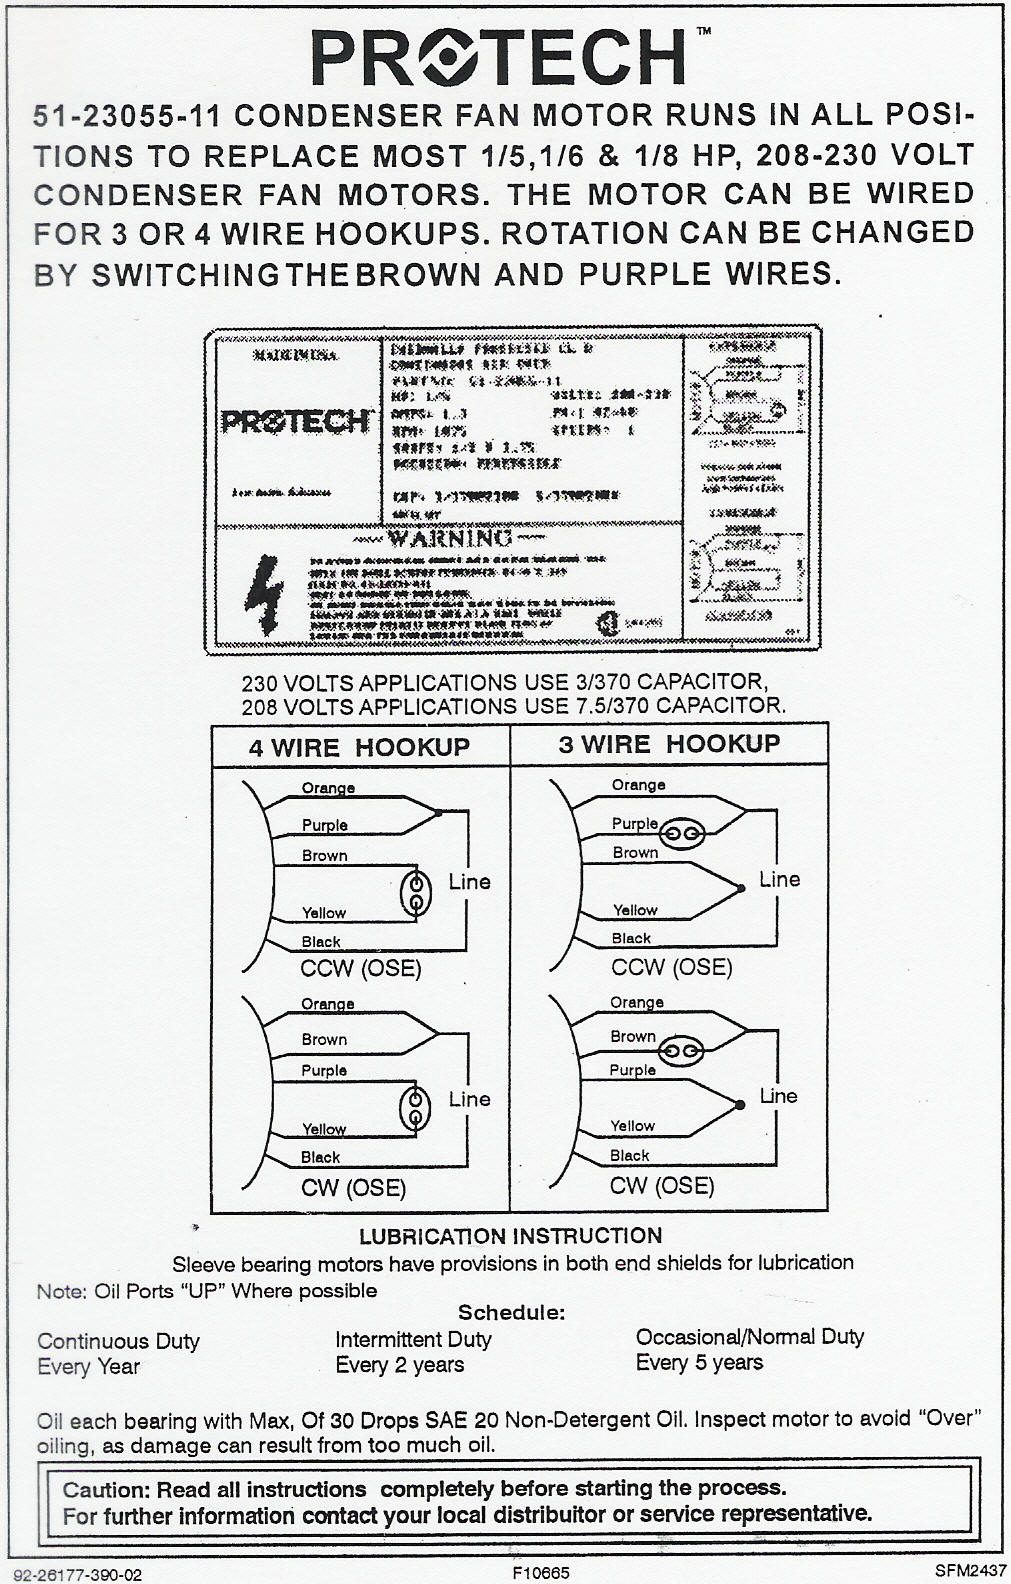 51 23055 11 wiring diagram rheem ruud condenser fan motor 51 23055 11 wiring diagram rheem heat pump wiring schematic at bayanpartner.co